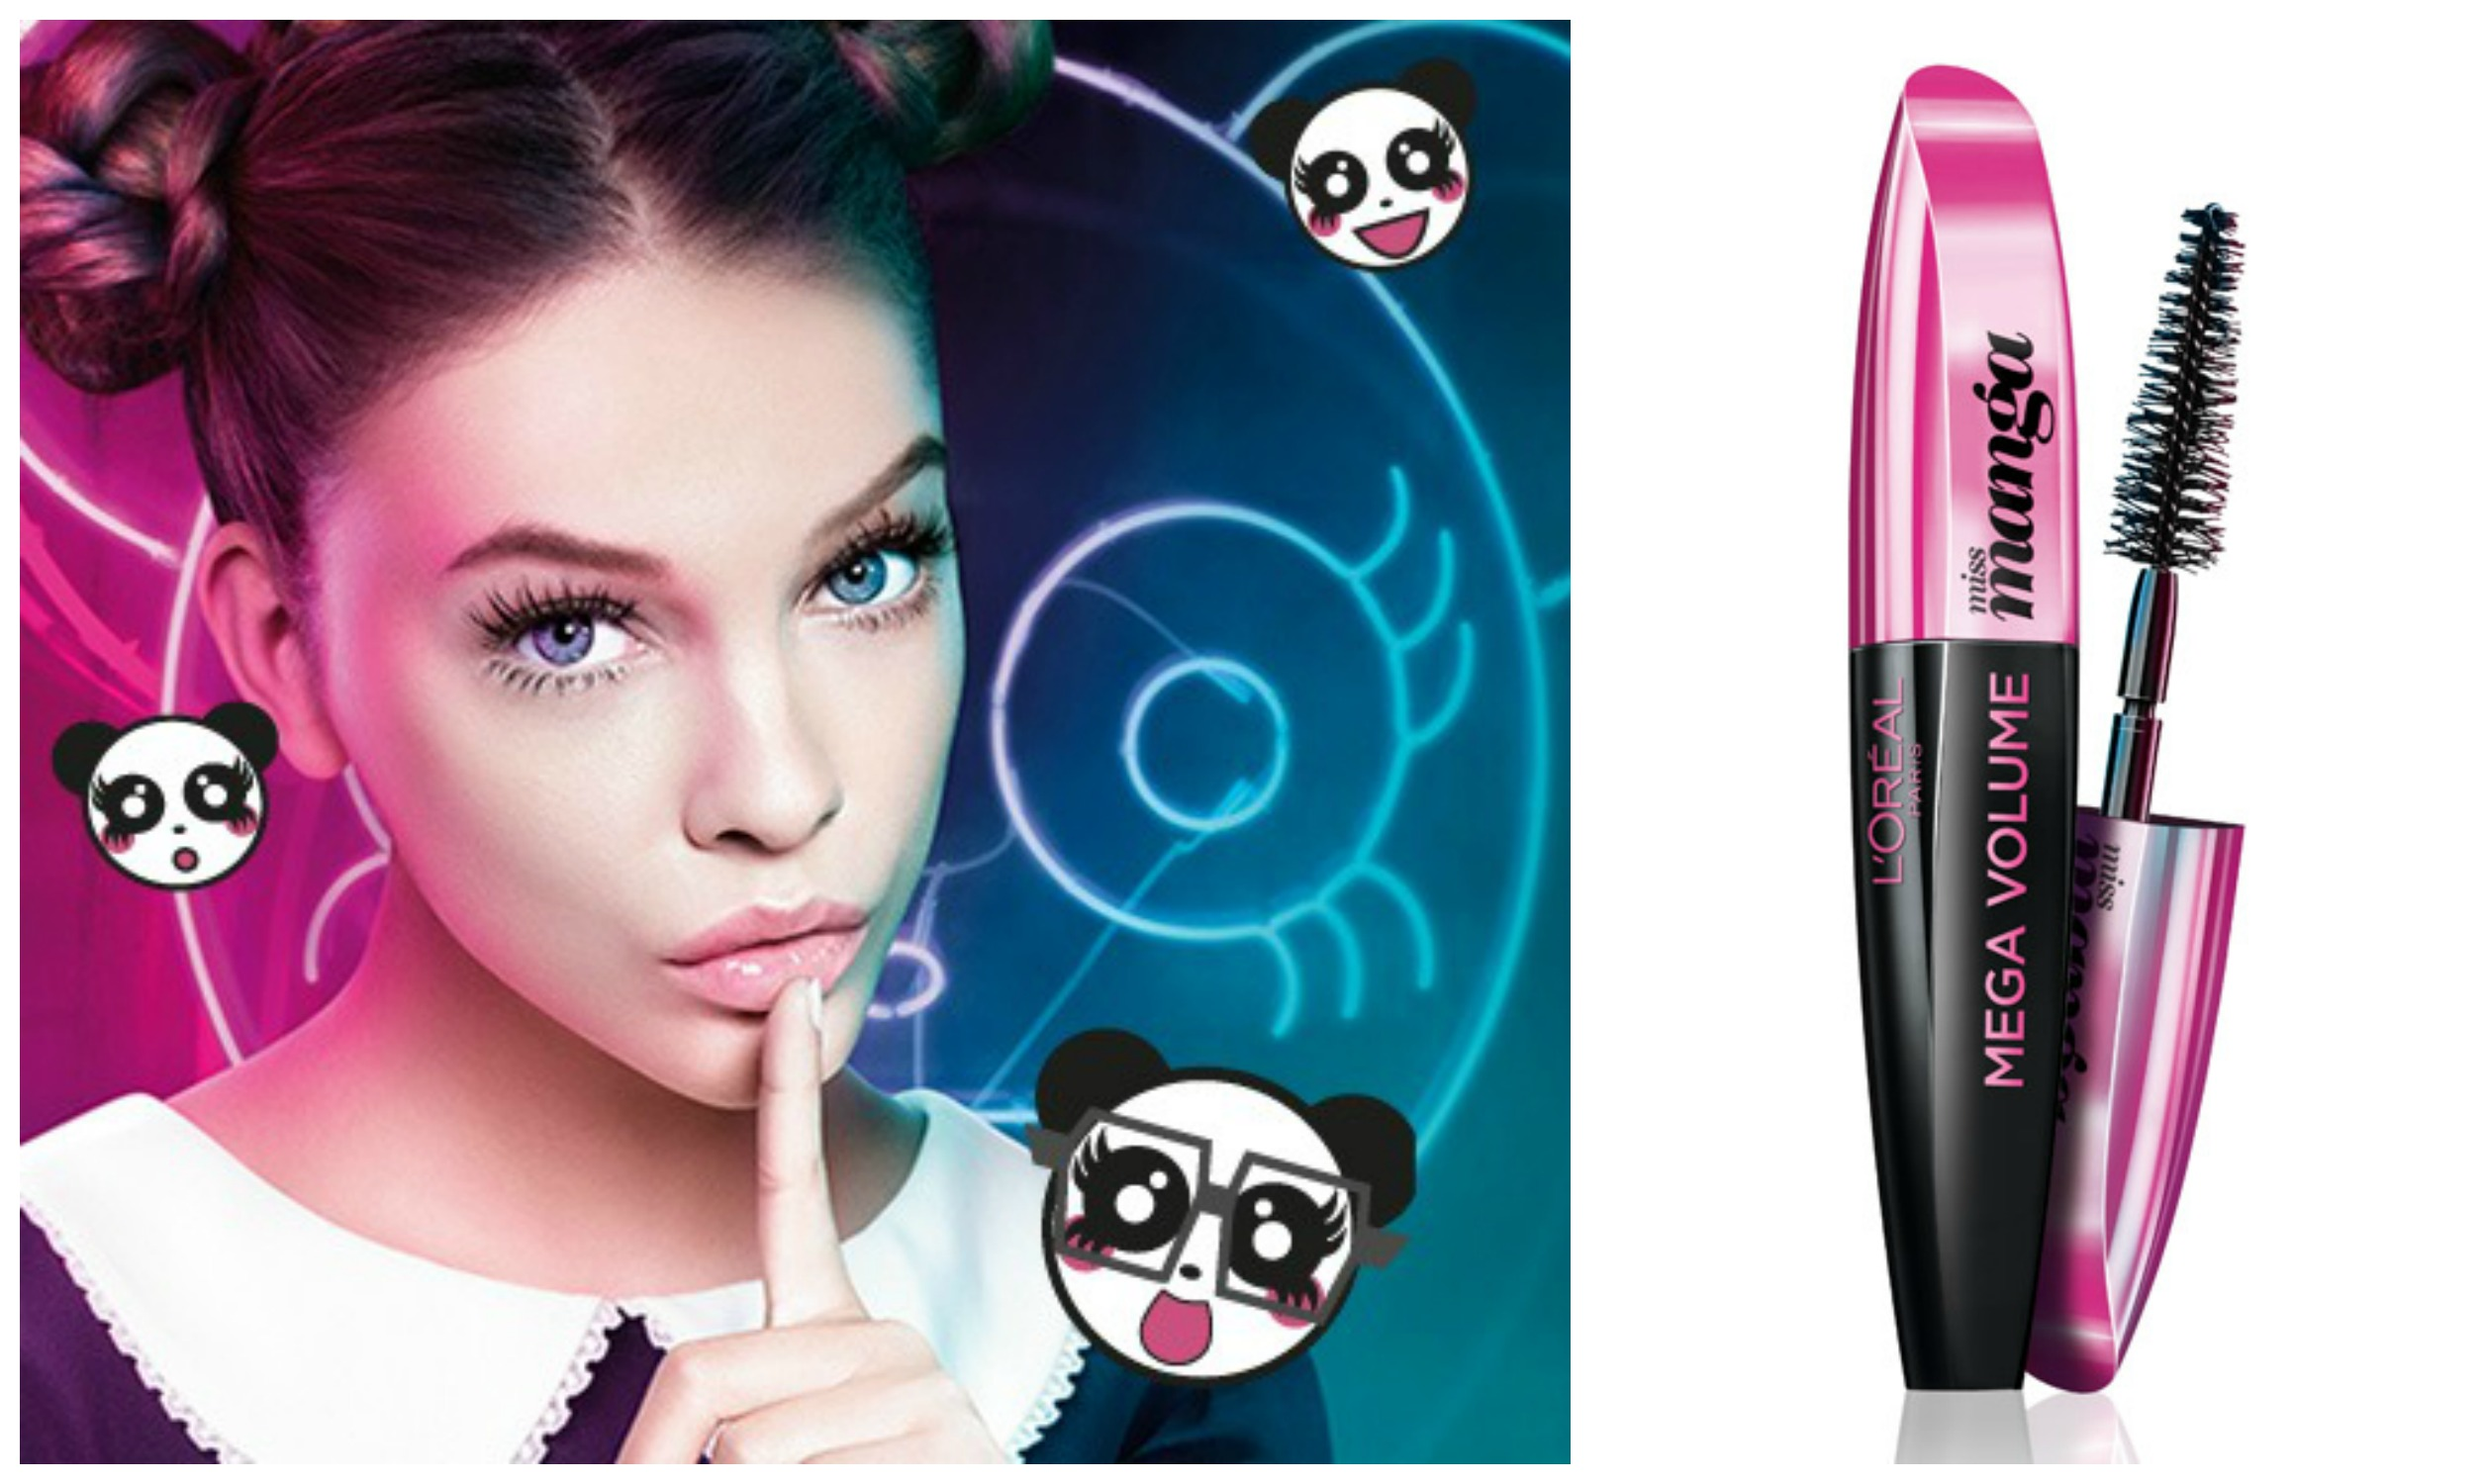 62ab9ea7465 L'Oréal Mega Volume Miss Manga Mascara Is Obscenely Good: Review And ...